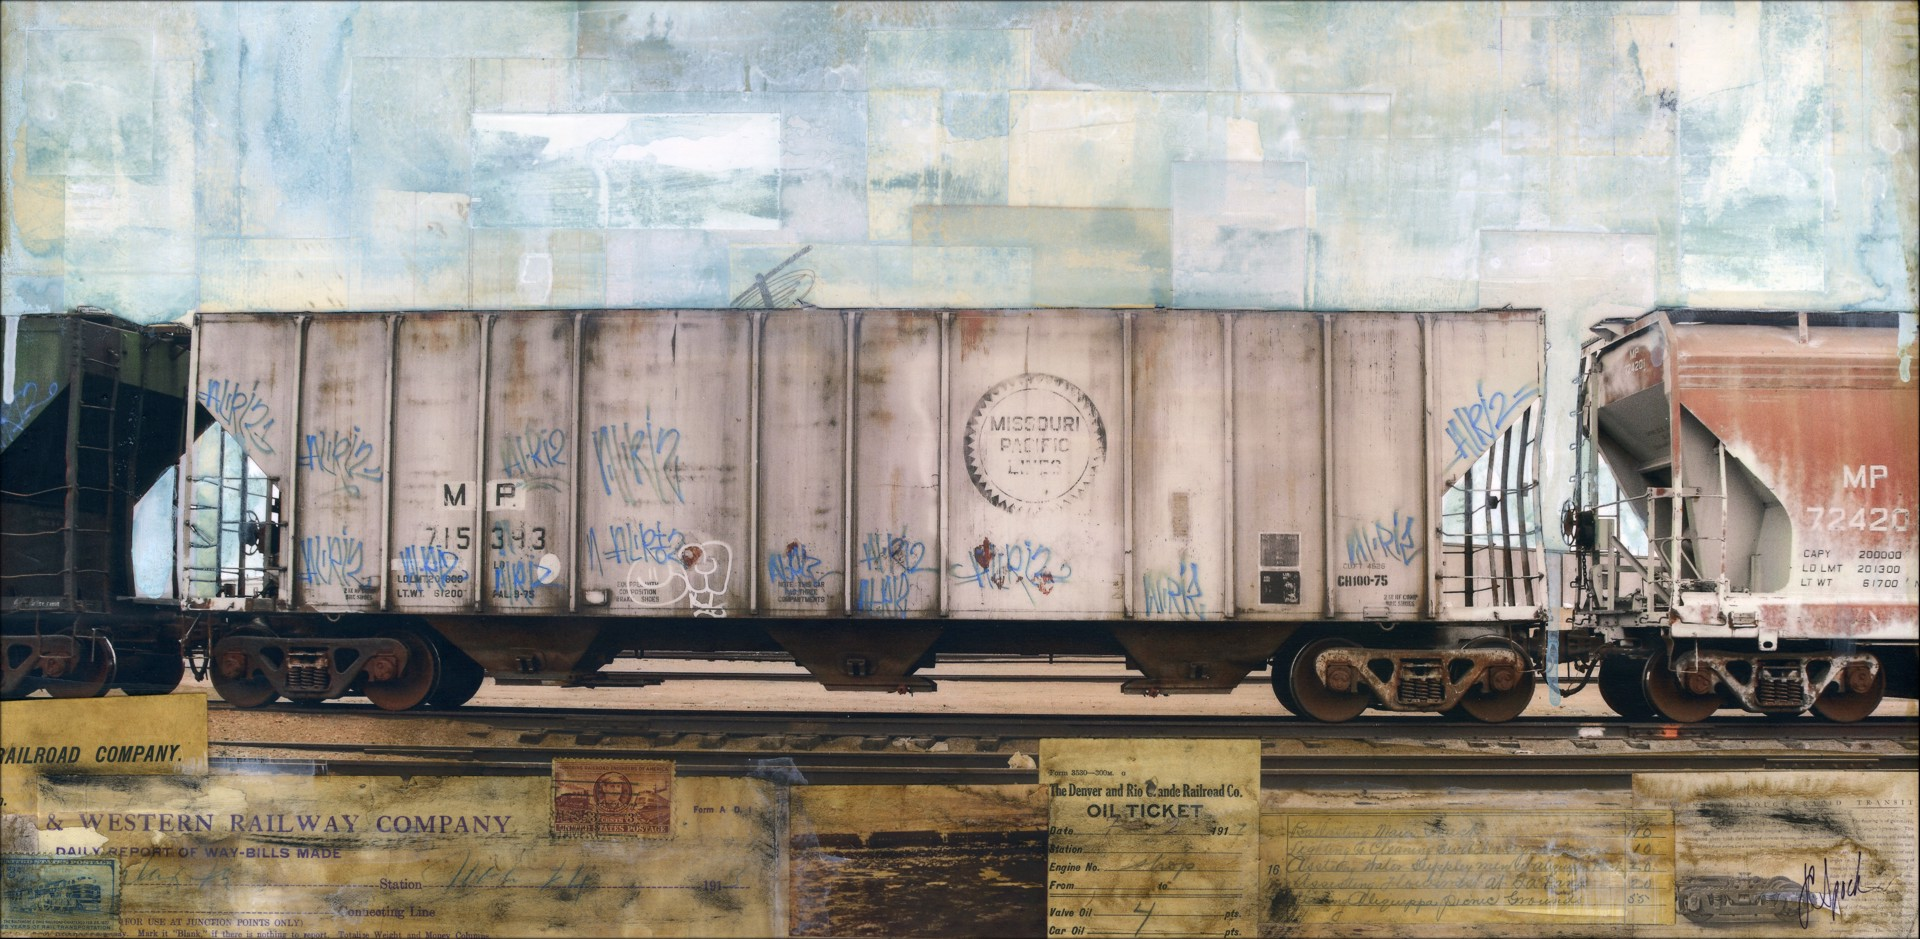 Missouri Pacific by JC Spock